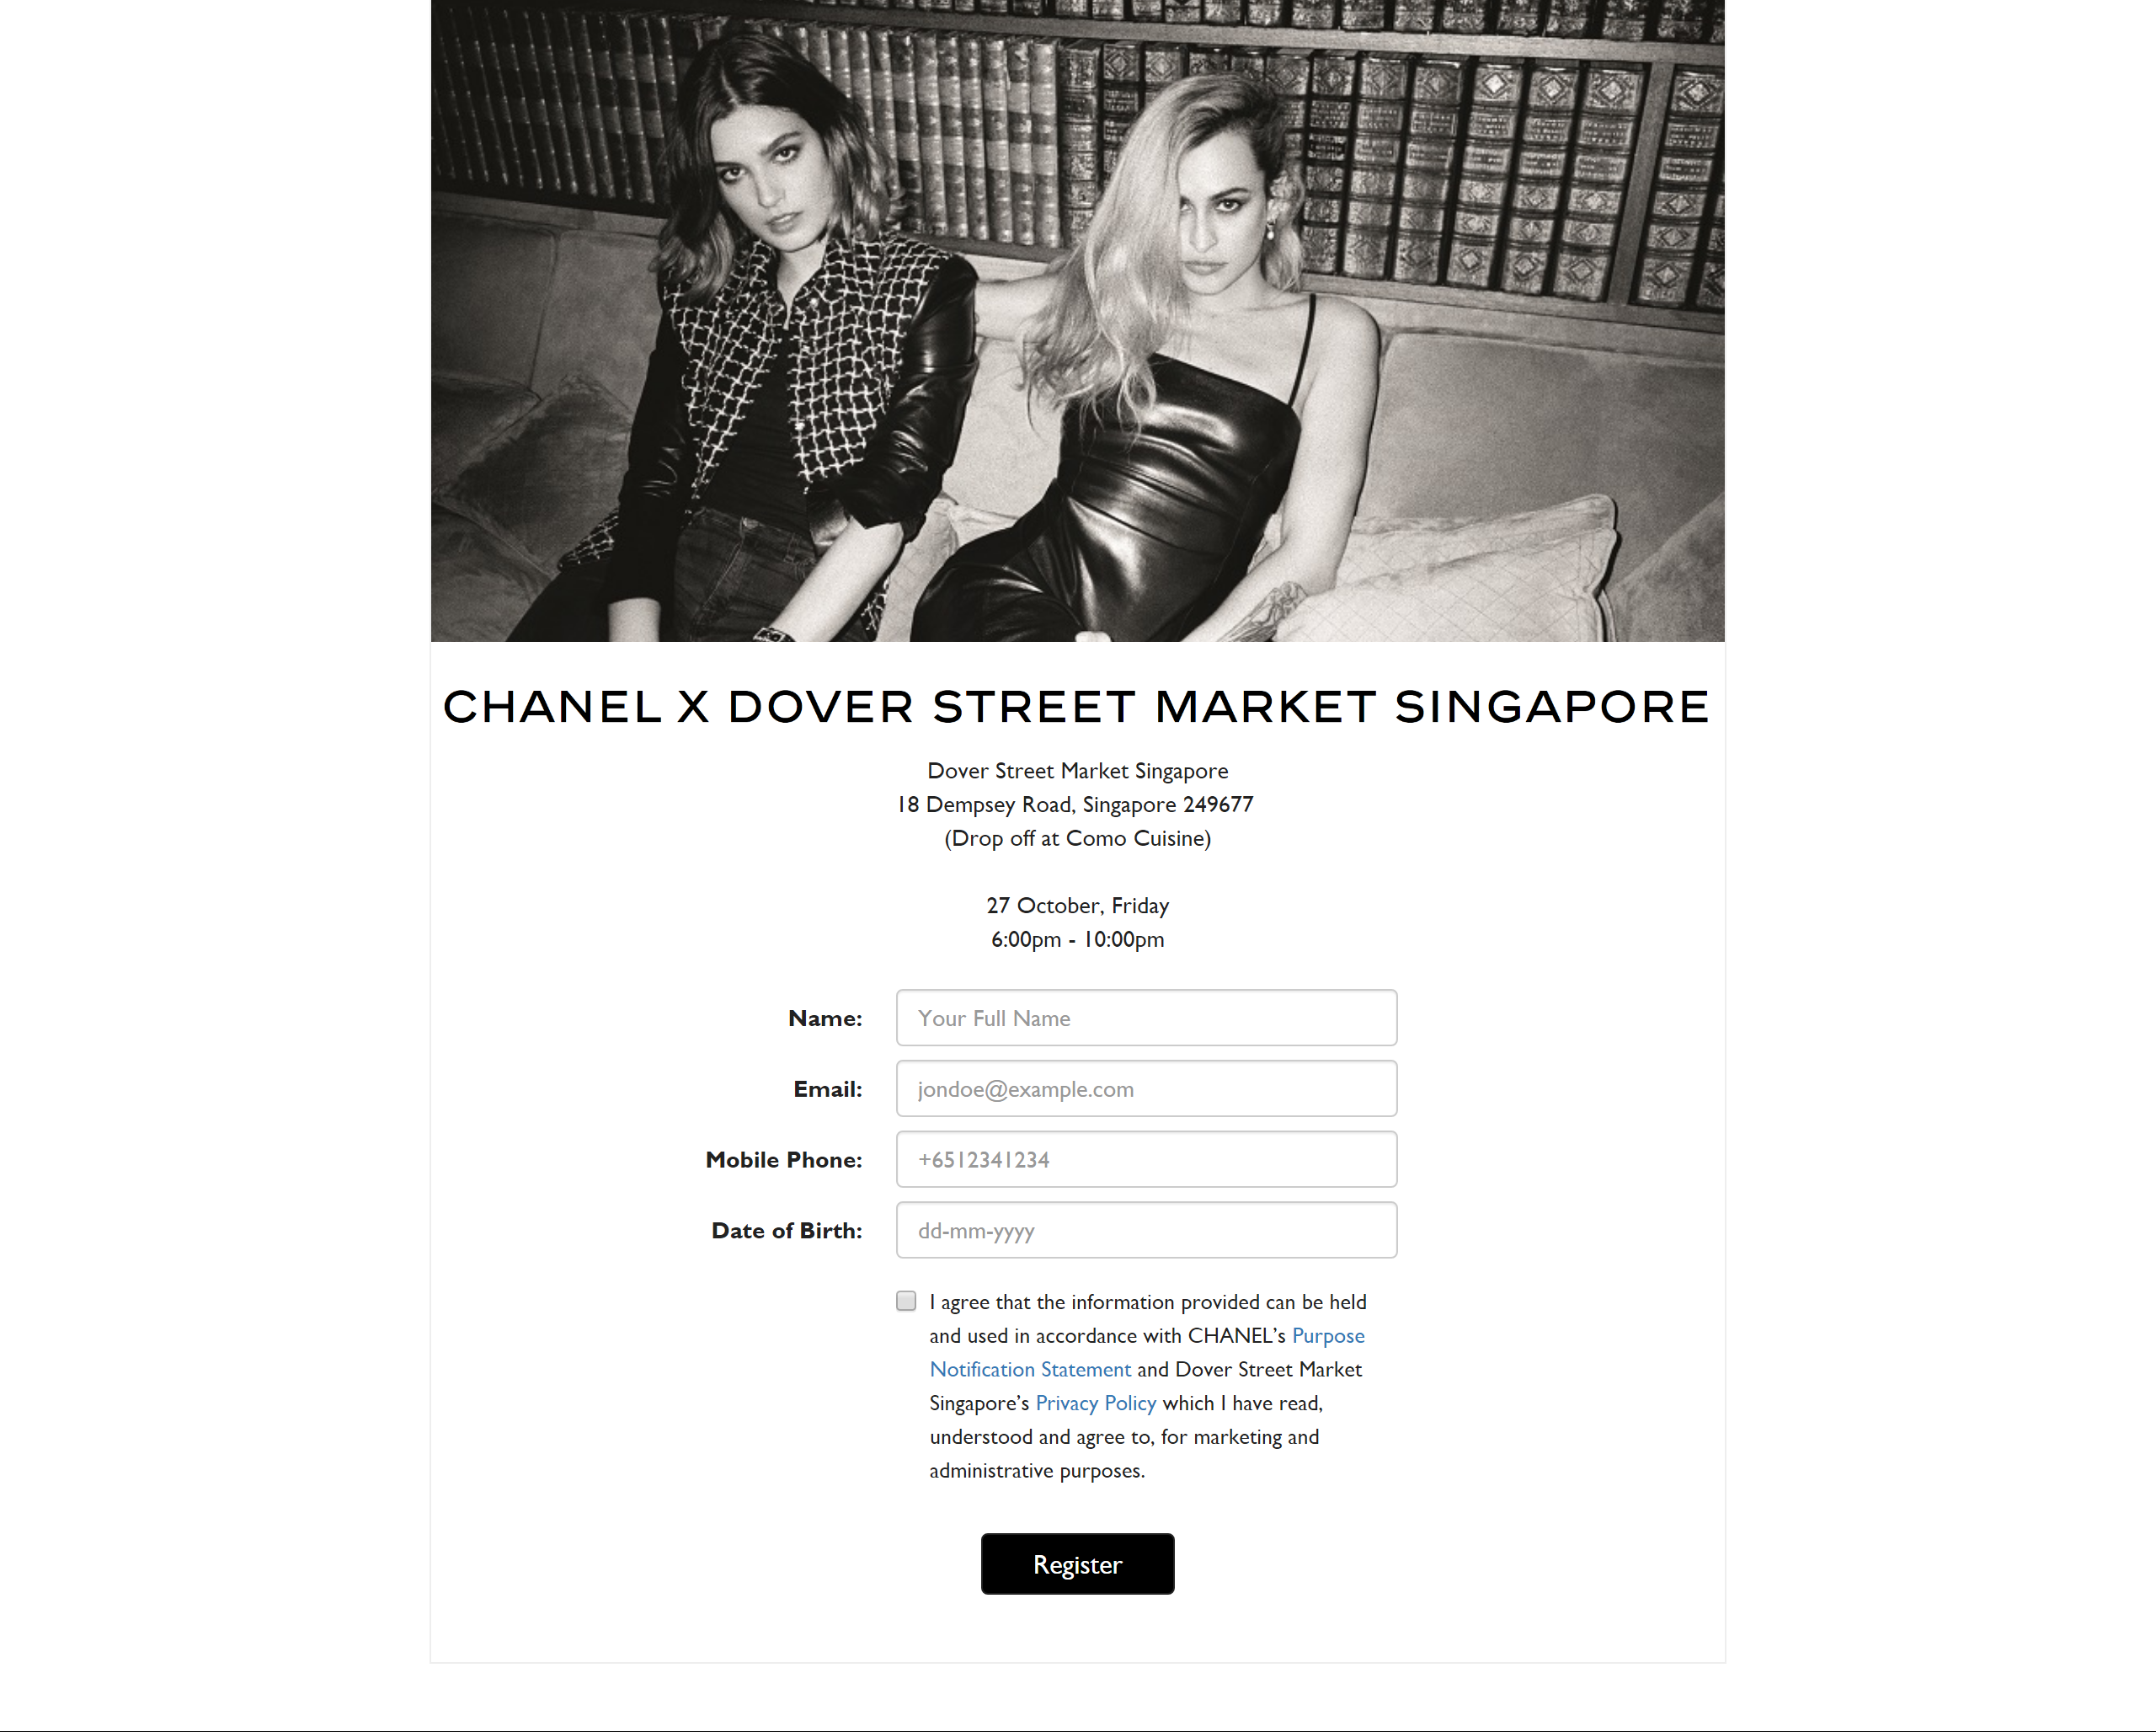 Chanel x Dover